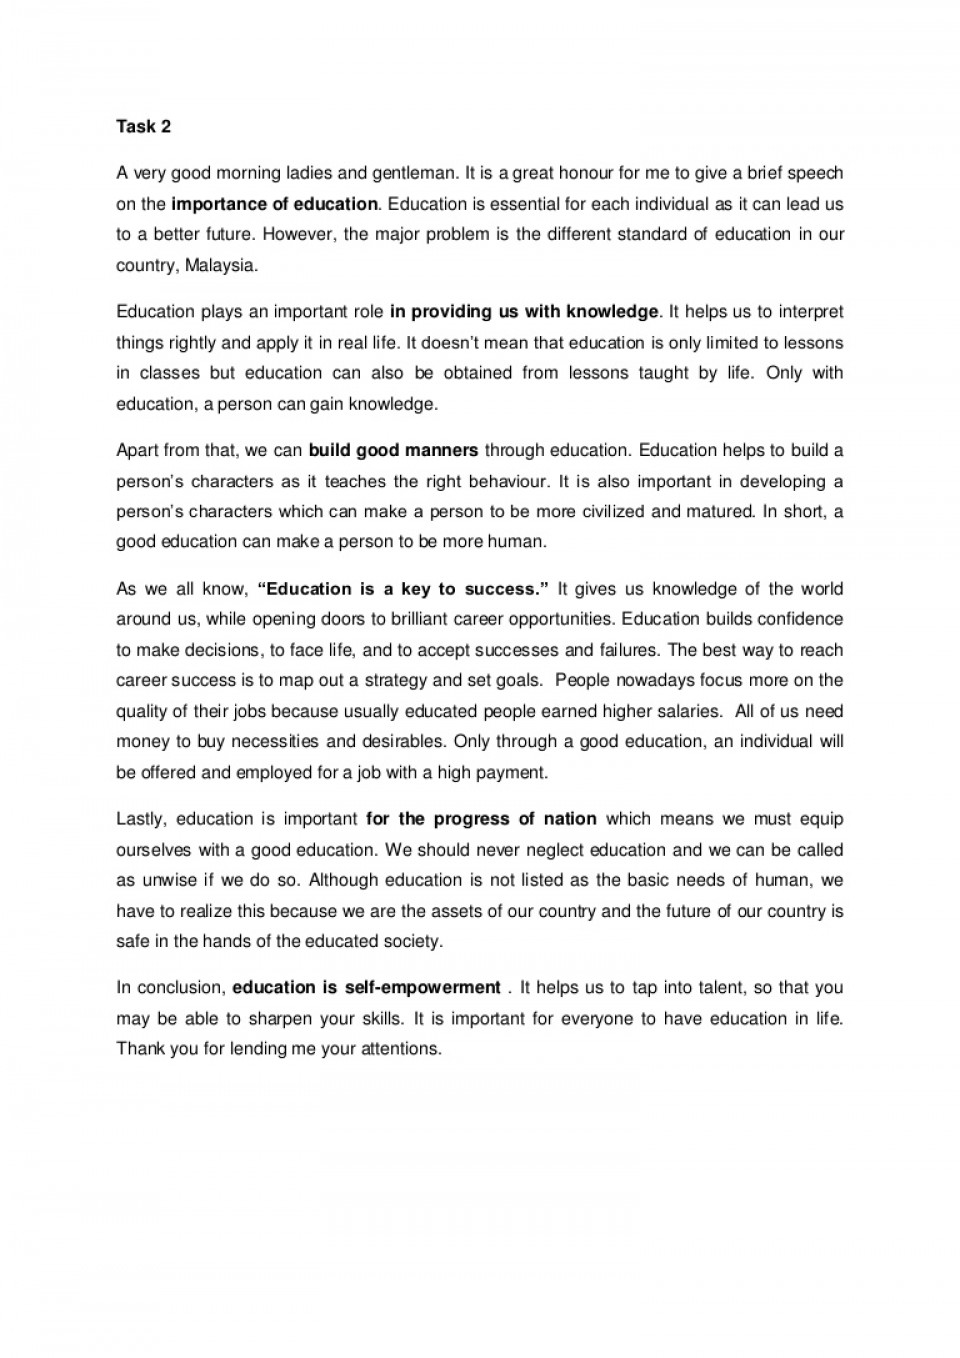 002 Essay Example Speechoneducationfolio Phpapp02 Thumbnail Education Gives Best Power One 960